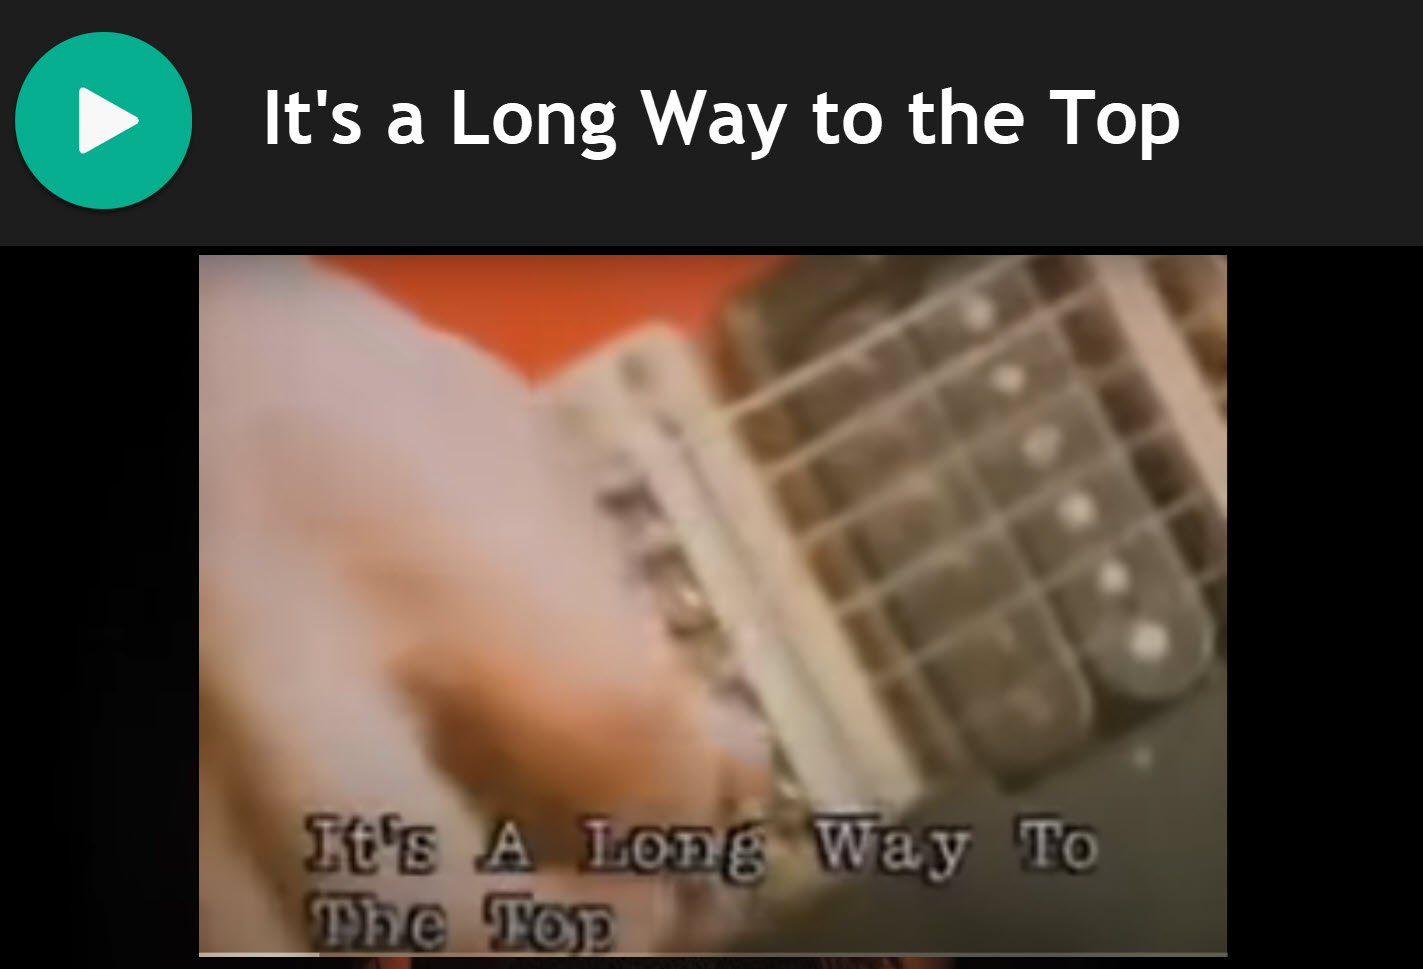 It's a Long Way to the Top by AC/DC for Bagpipes